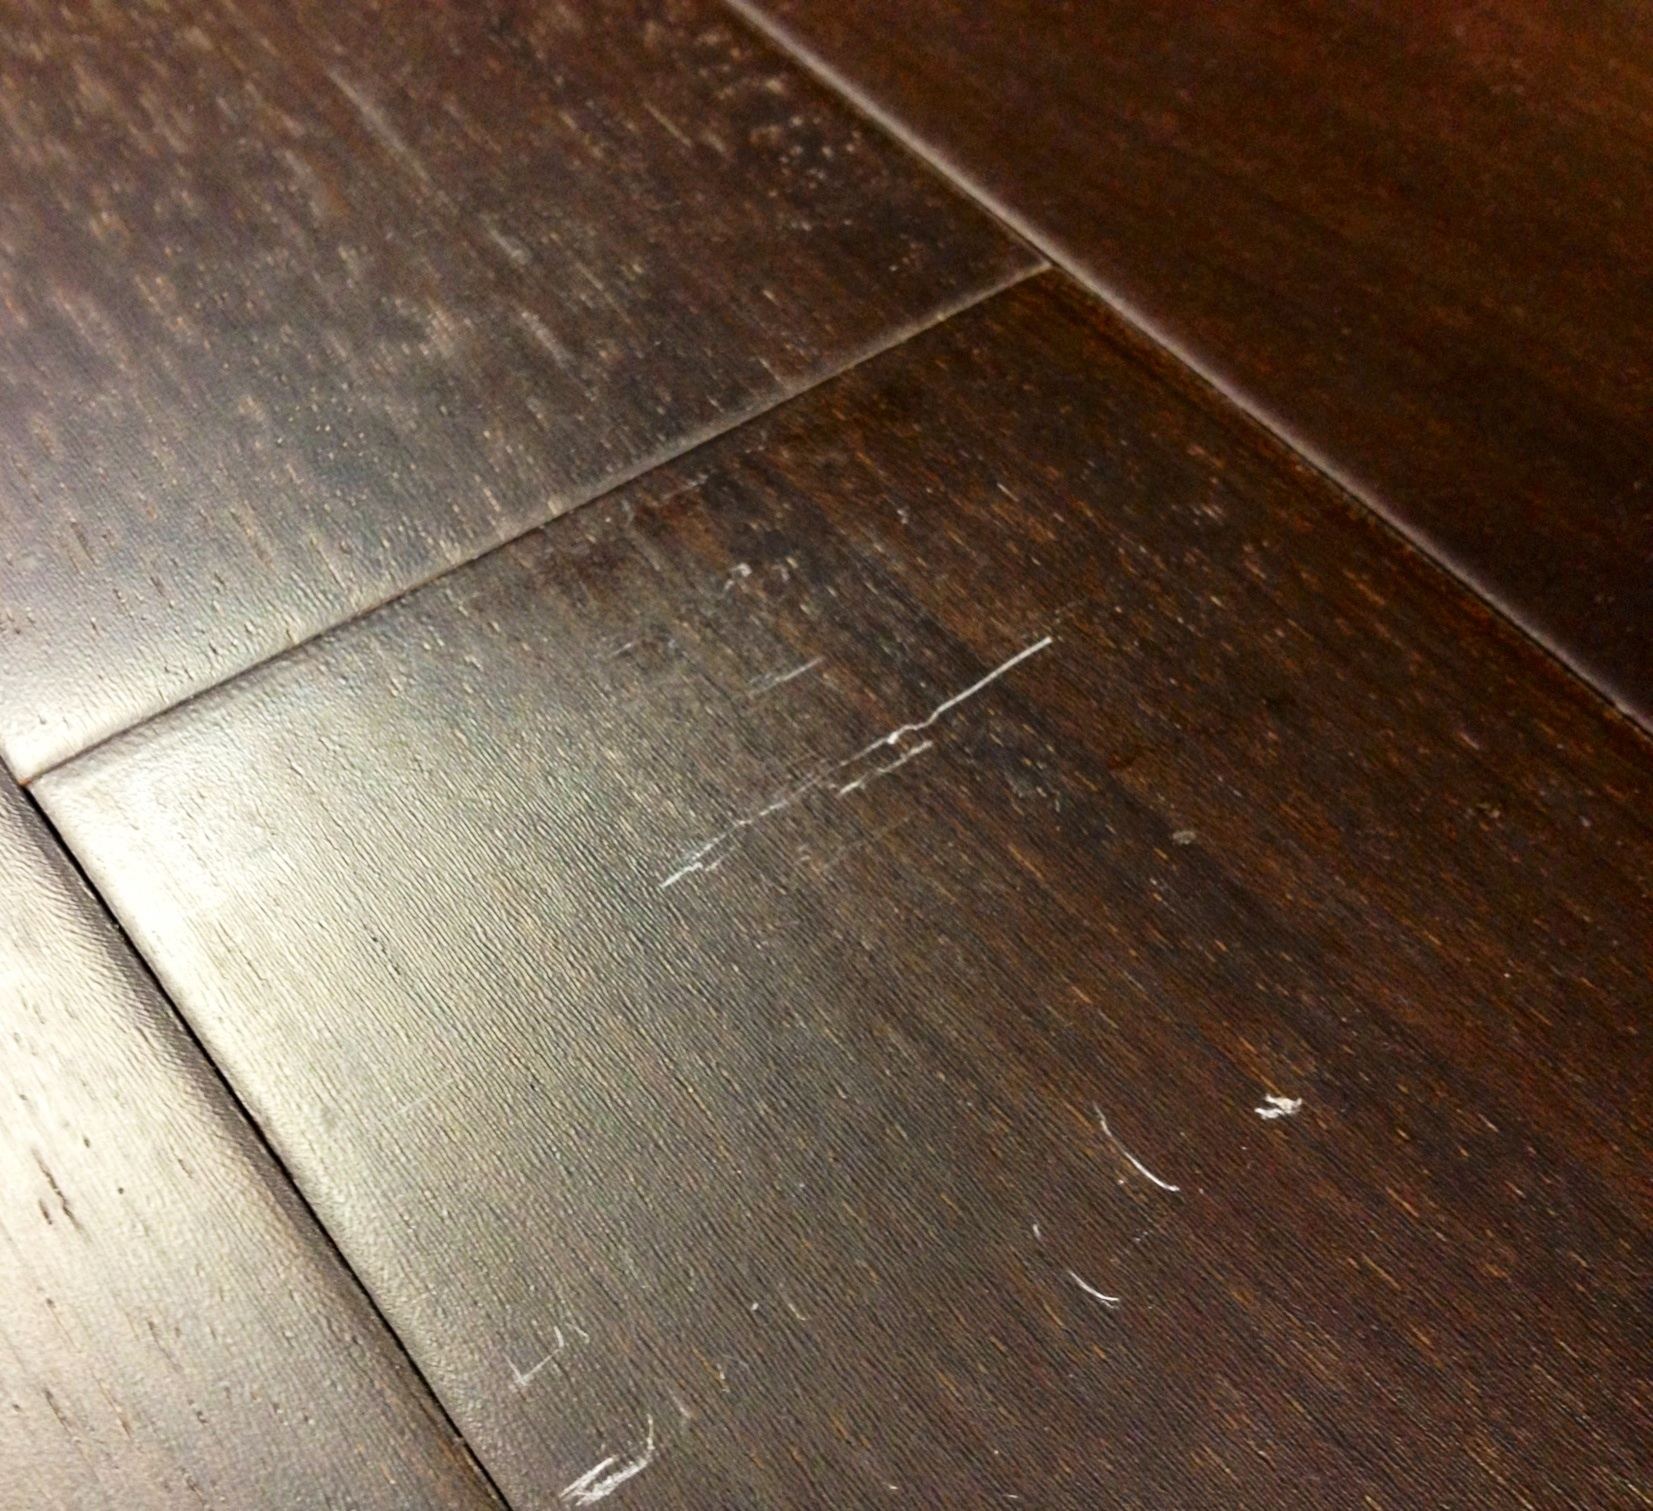 Get Light Scratches Out Of Wood Floor